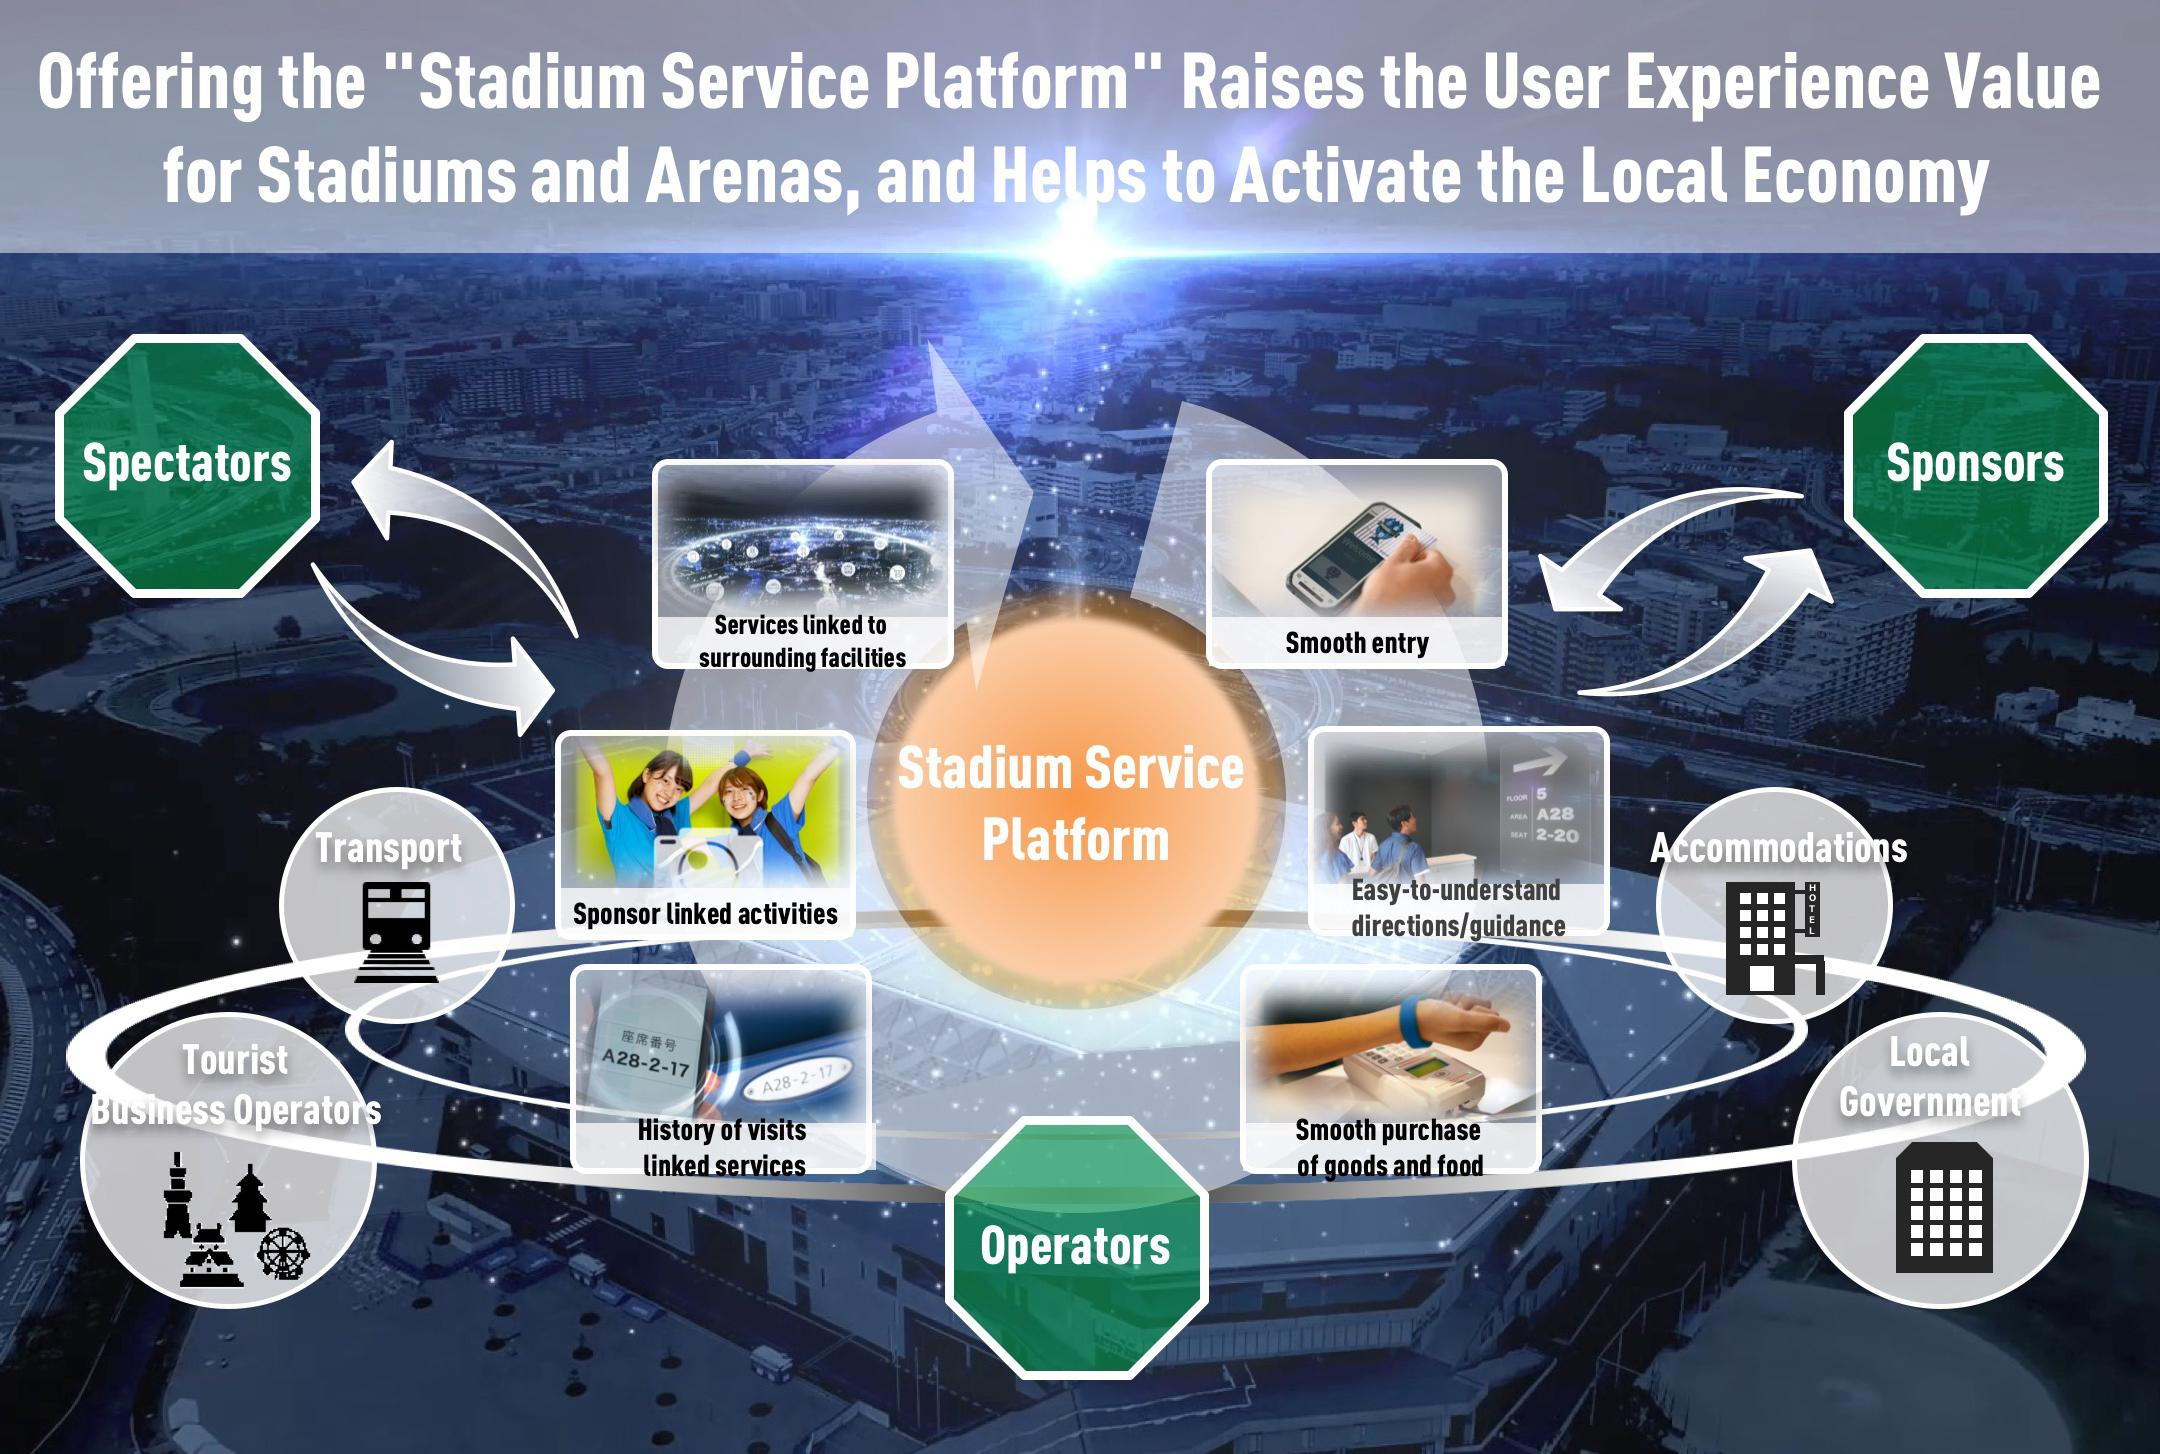 Image: Conceptual Diagram of the Stadium Service Platform